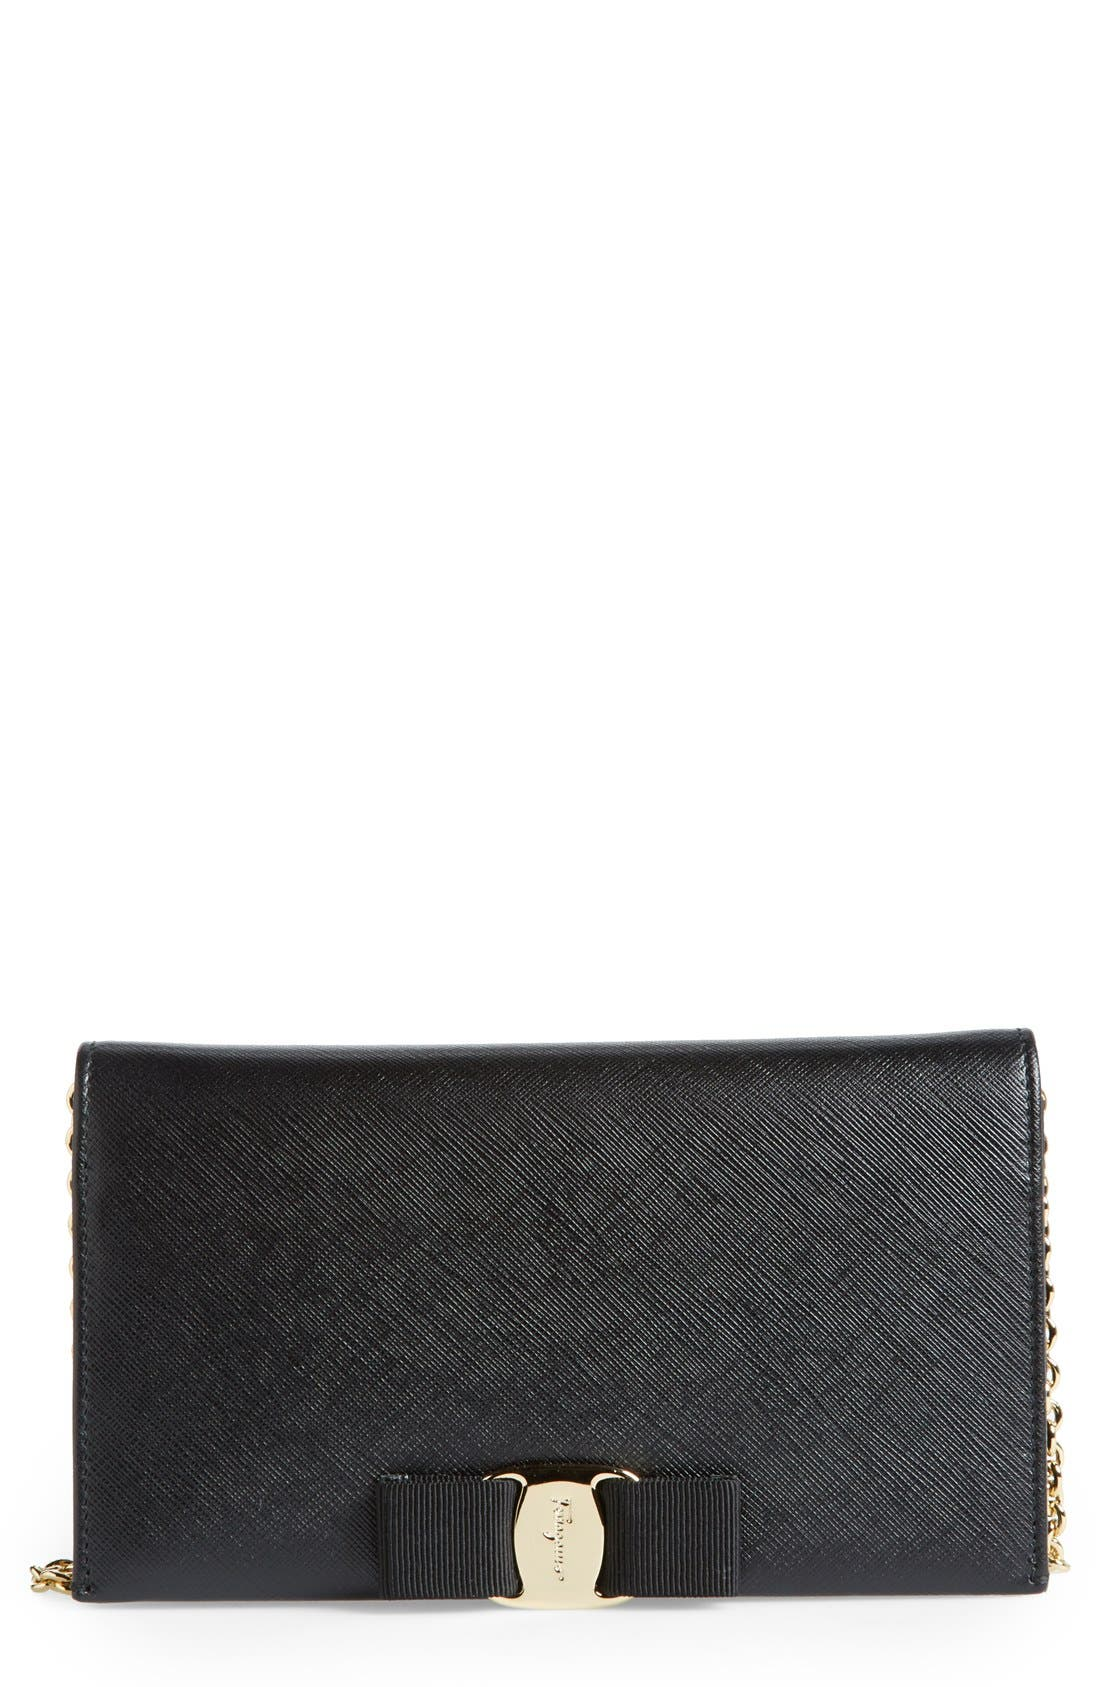 Salavatore Ferragamo 'Miss Vara' Leather Wallet on a Chain